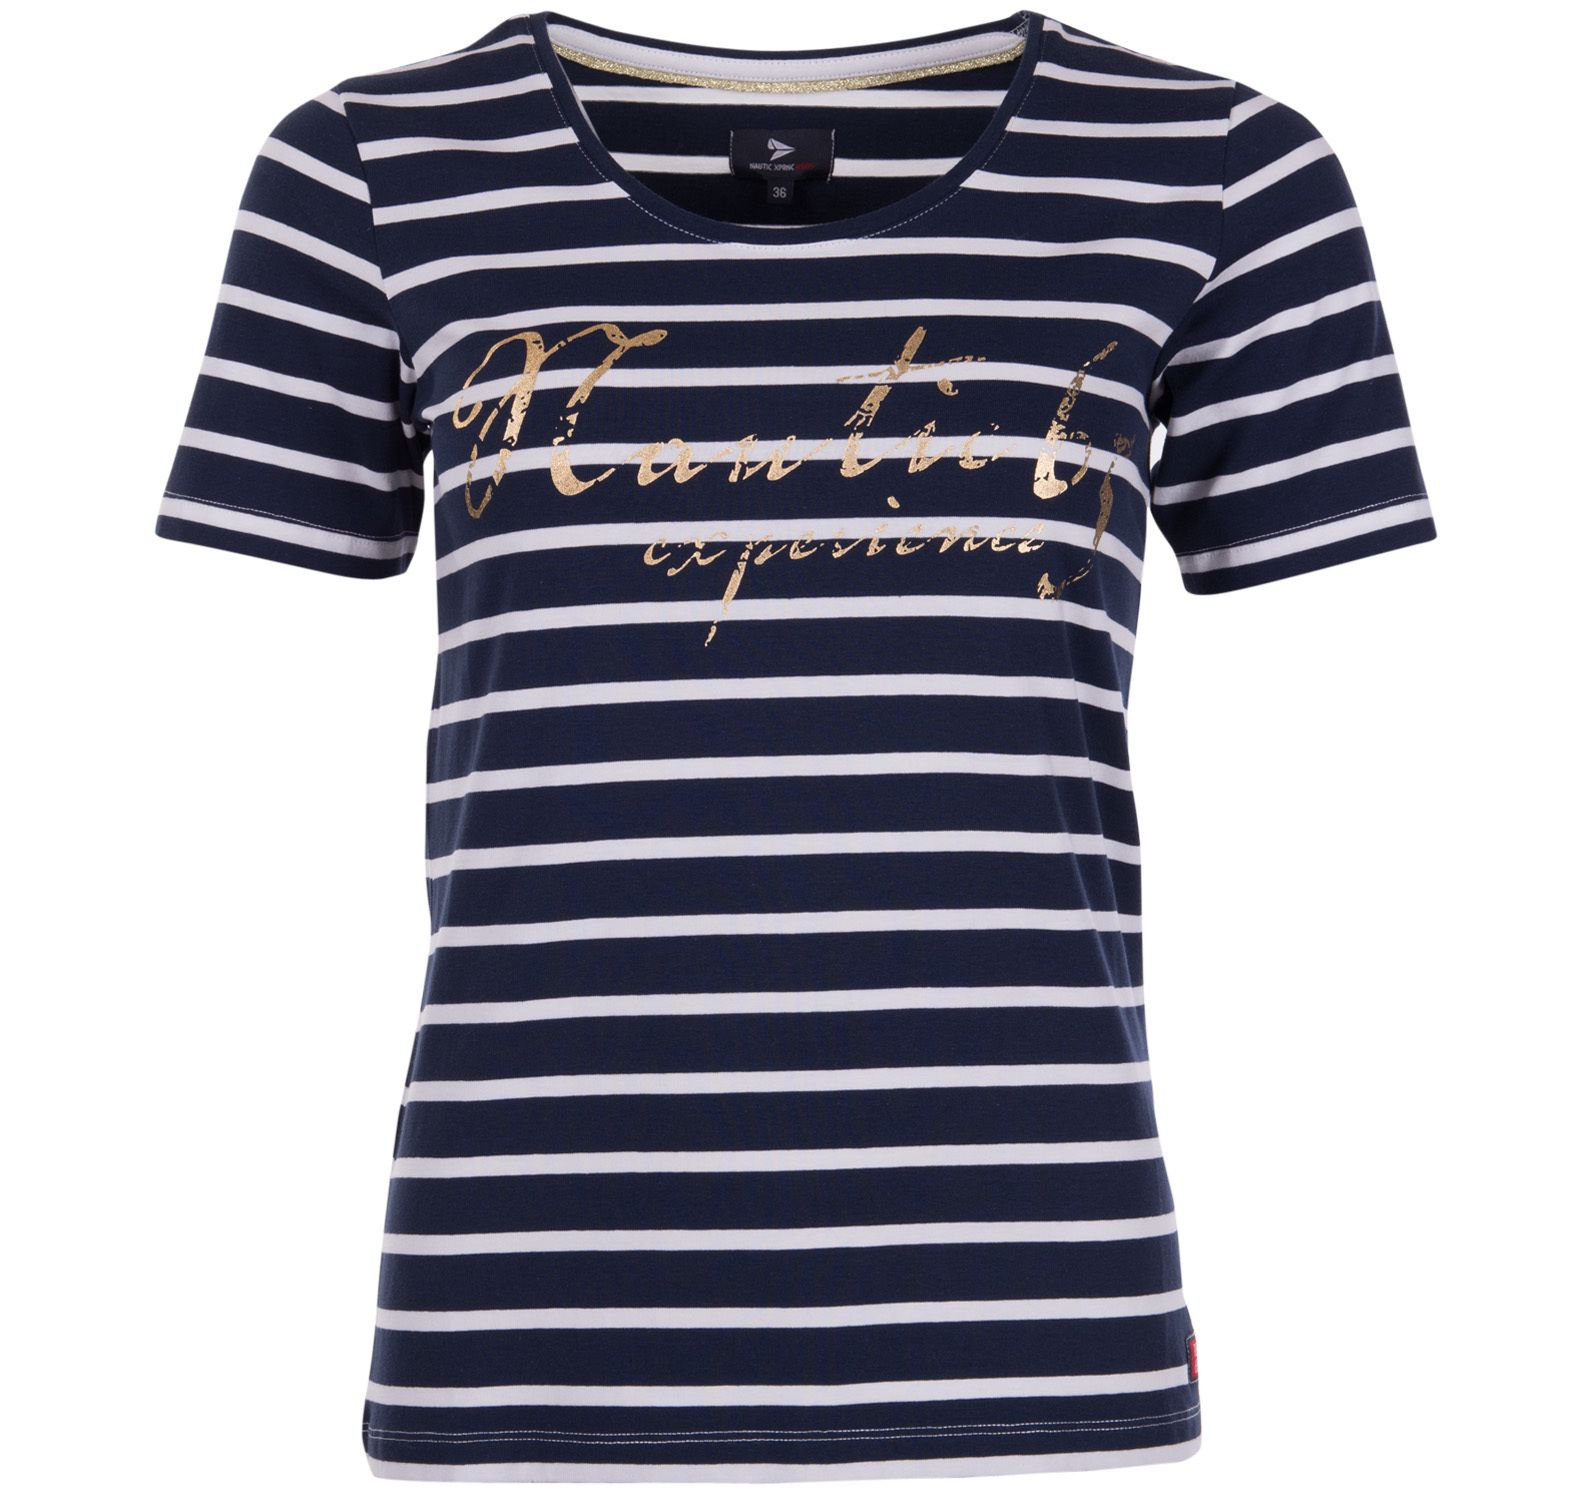 styrsö tee w, navy/white, 34,  nautic xprnc rs65